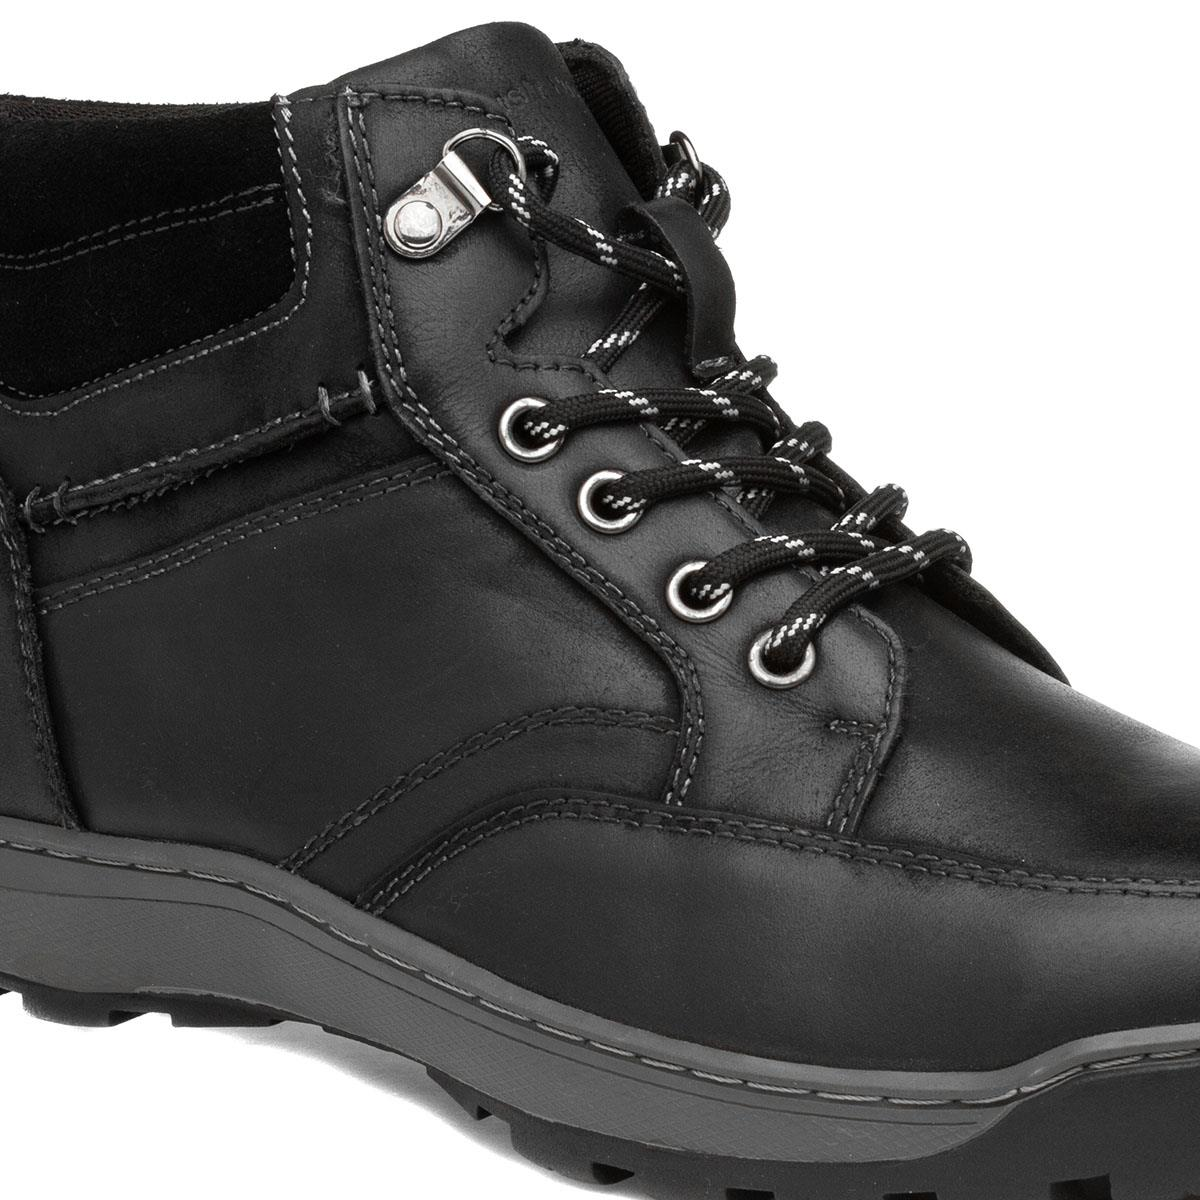 Hush Puppies Grover Mens Black Leather Lace Up Desert Chukka Boots Size 8-14